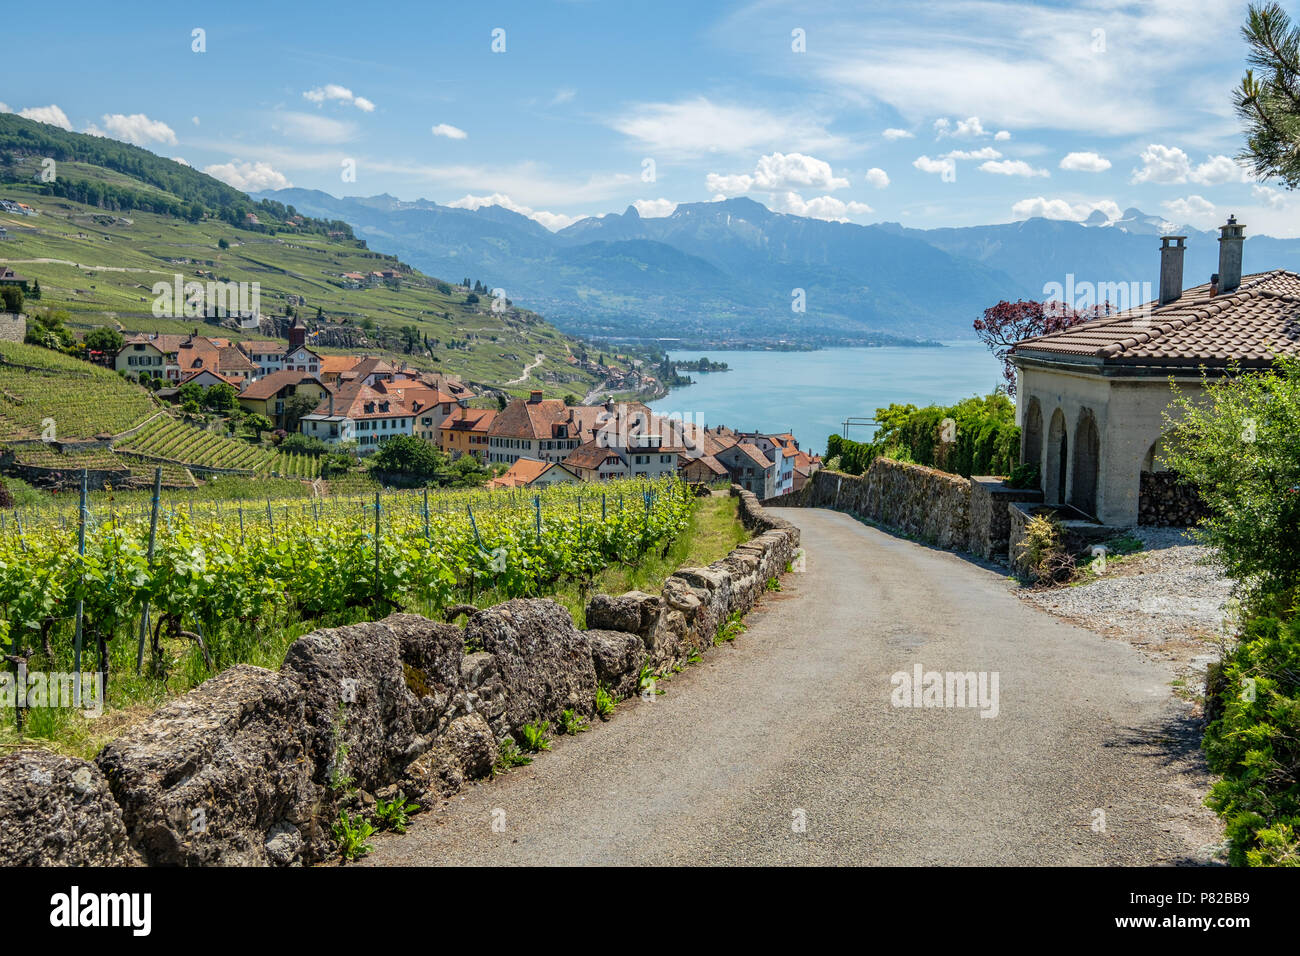 View on a little winery village called Rivaz, in the beautiful Lavaux winery area in Switzerland - Stock Image